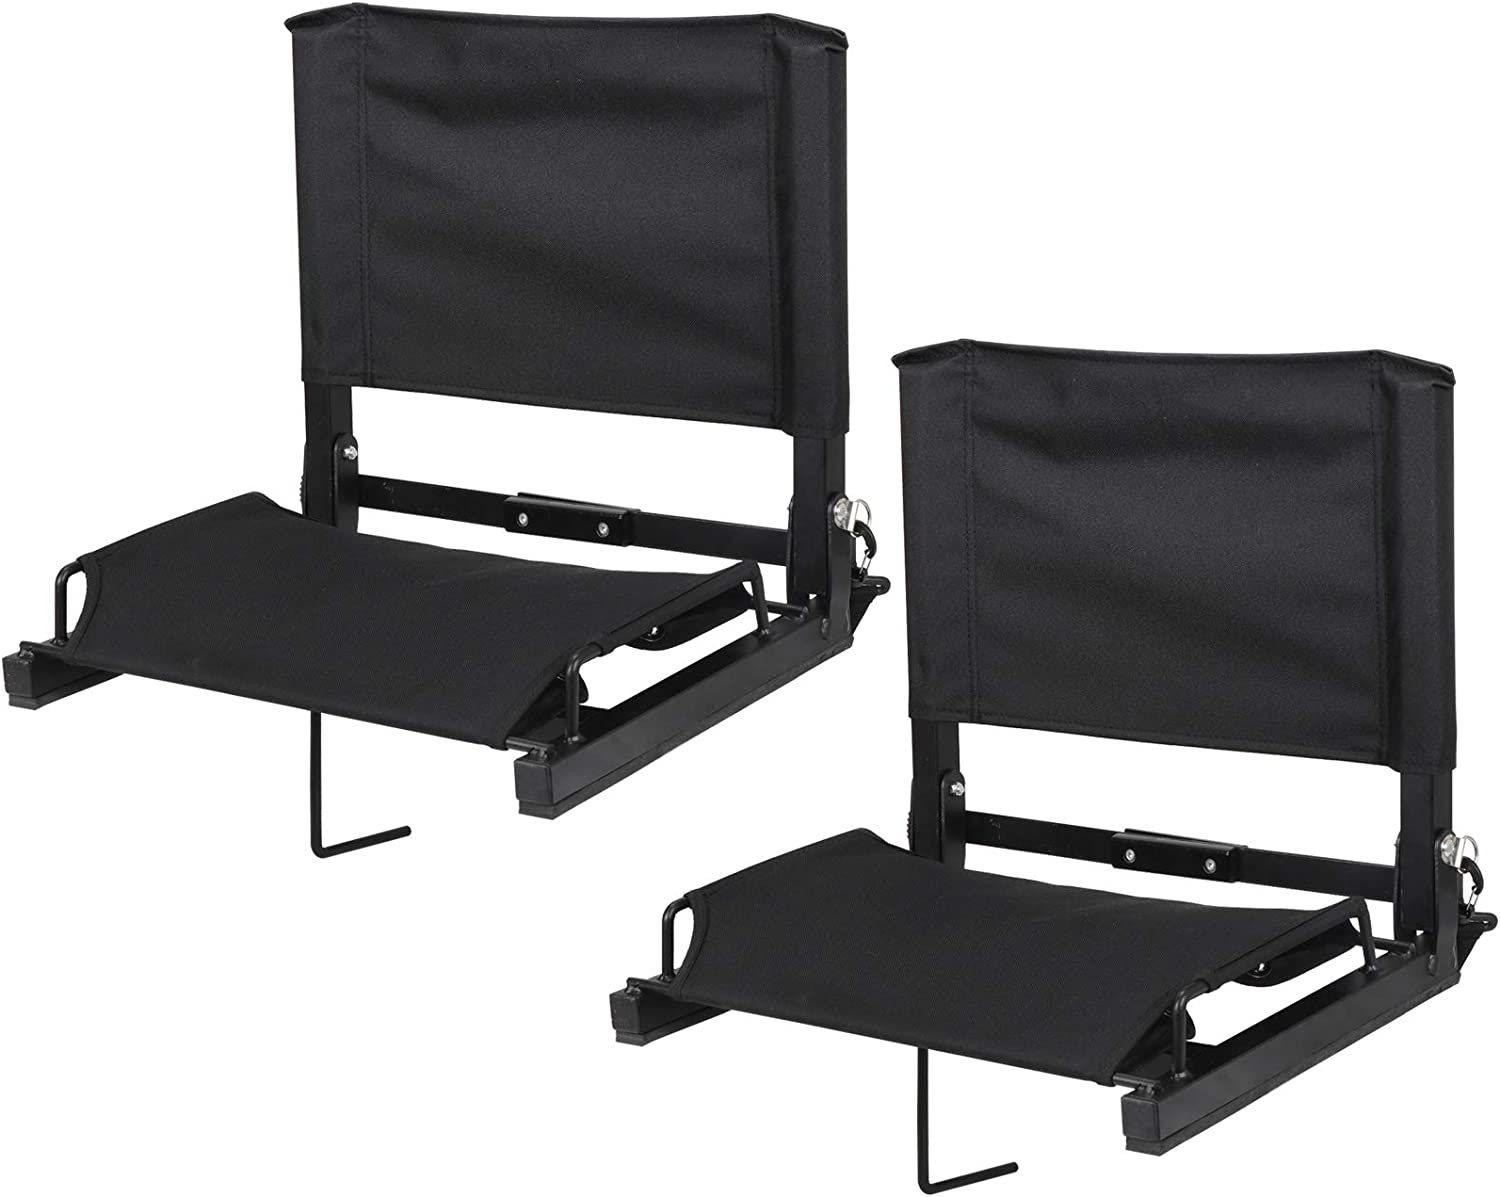 Wide Portable Stadium Chairs with Back Support and Shoulder Strap Bleacher Seats with Ultra Padded Comfy Foam Backs and Cushion Jauntis Stadium Seats for Bleachers